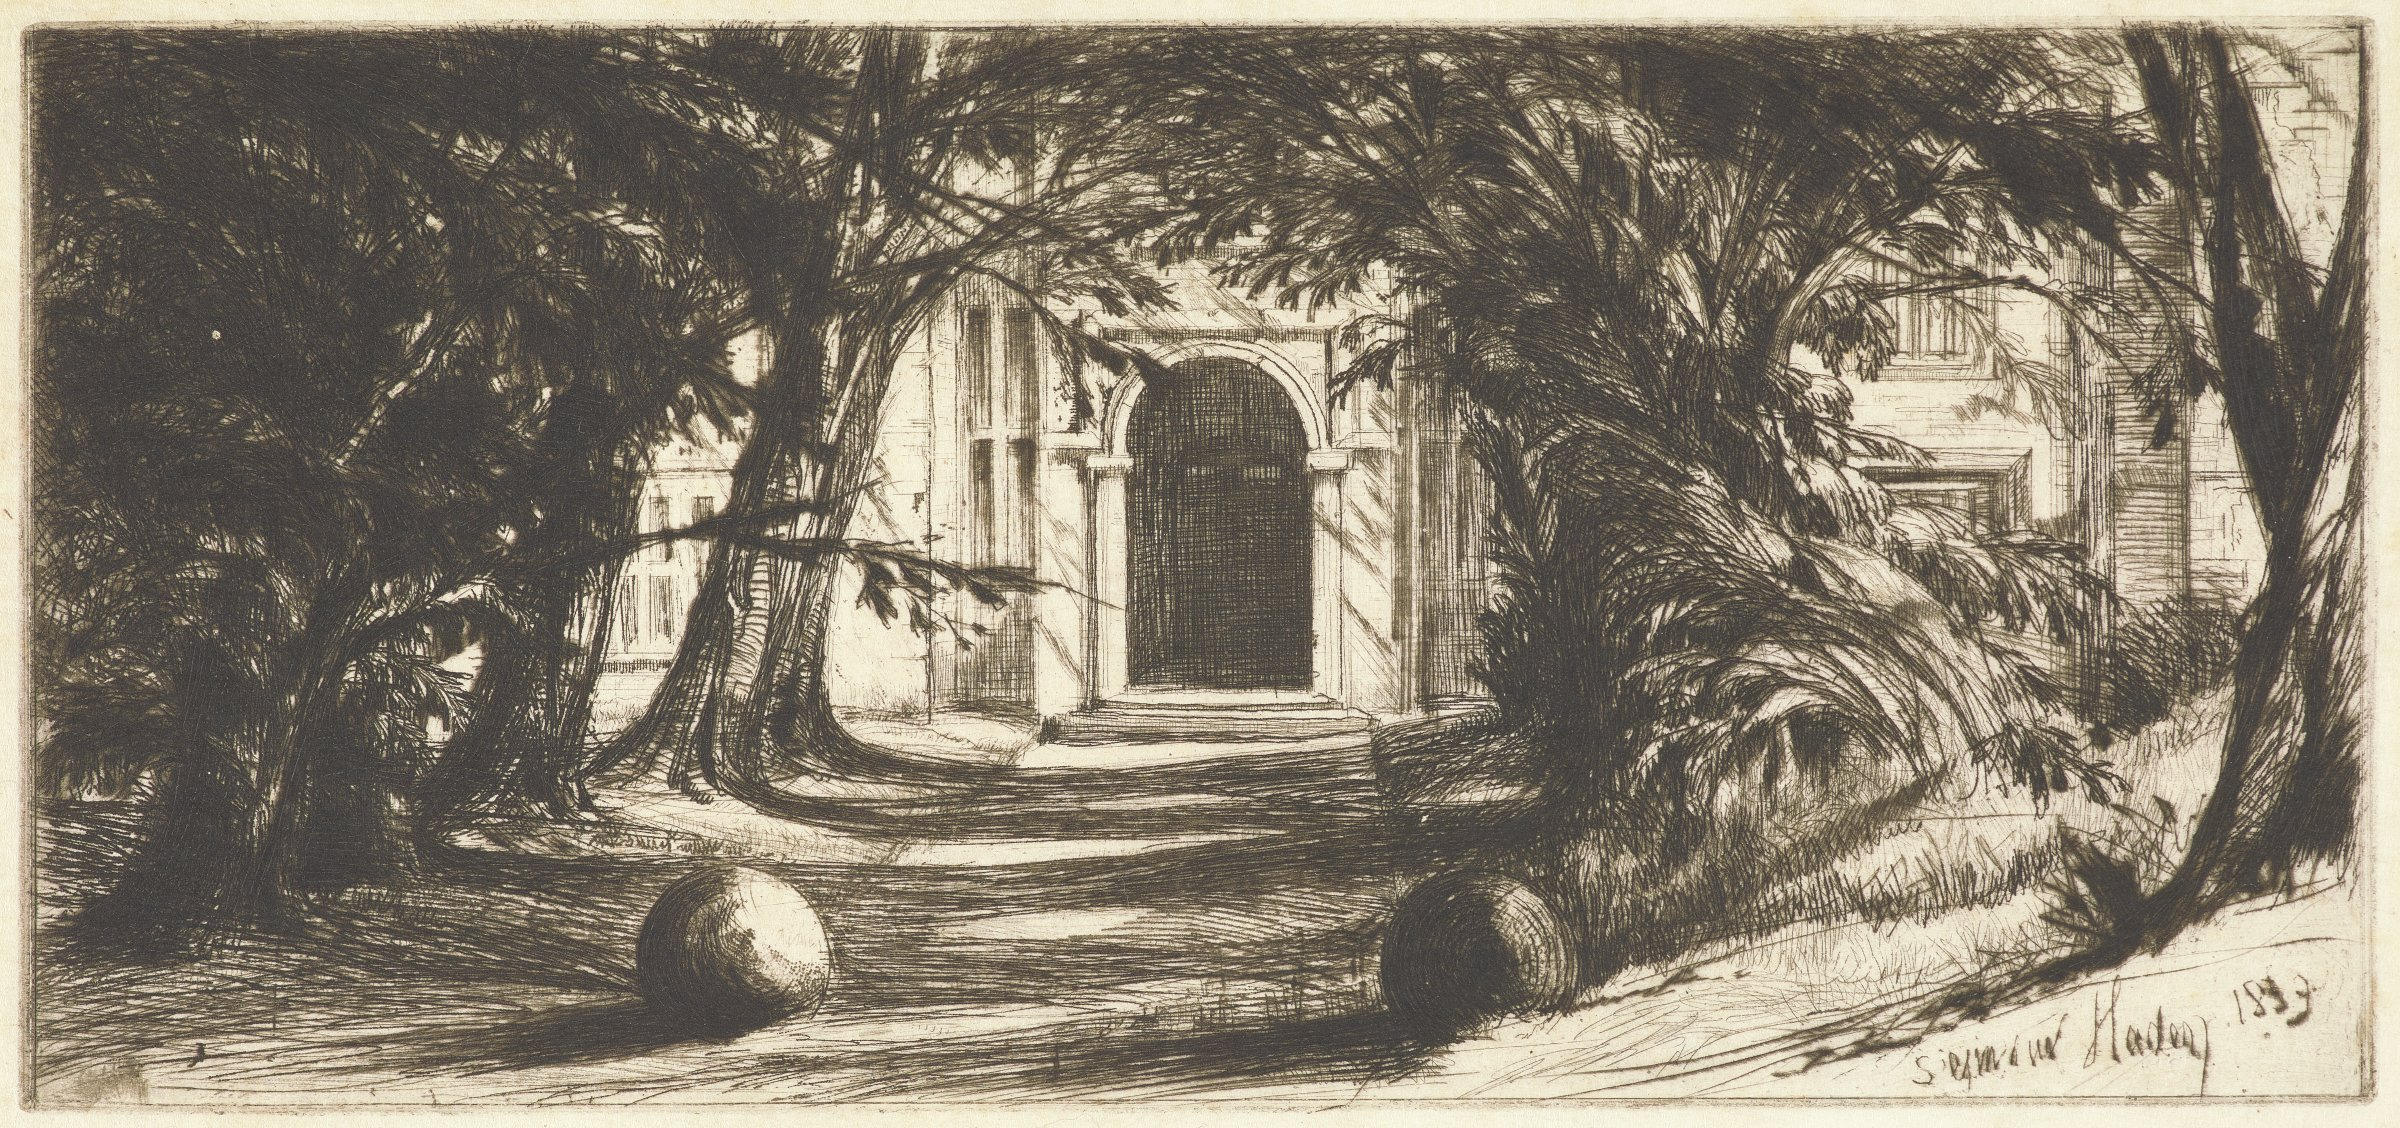 A path between trees leads to an arched doorway.